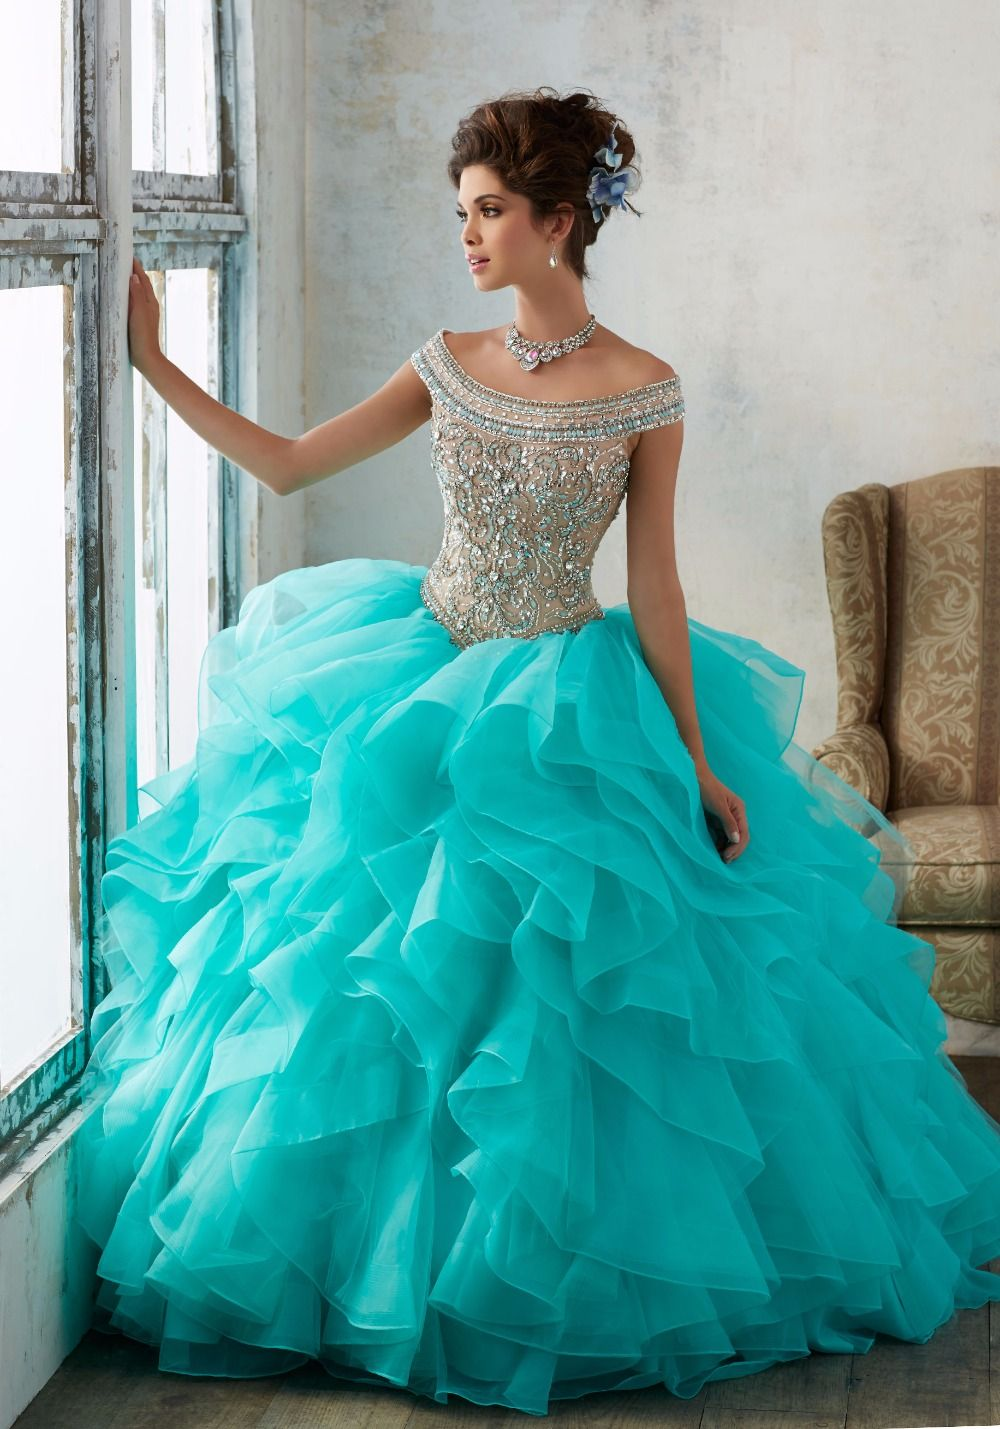 New 2016 Blush Pink Turquoise Quinceanera Dress Ball Gown Off Shoulder Tulle  Beaded Sweet 16 Dresses Vestidos De 15 Anos QR63 5223447e9009